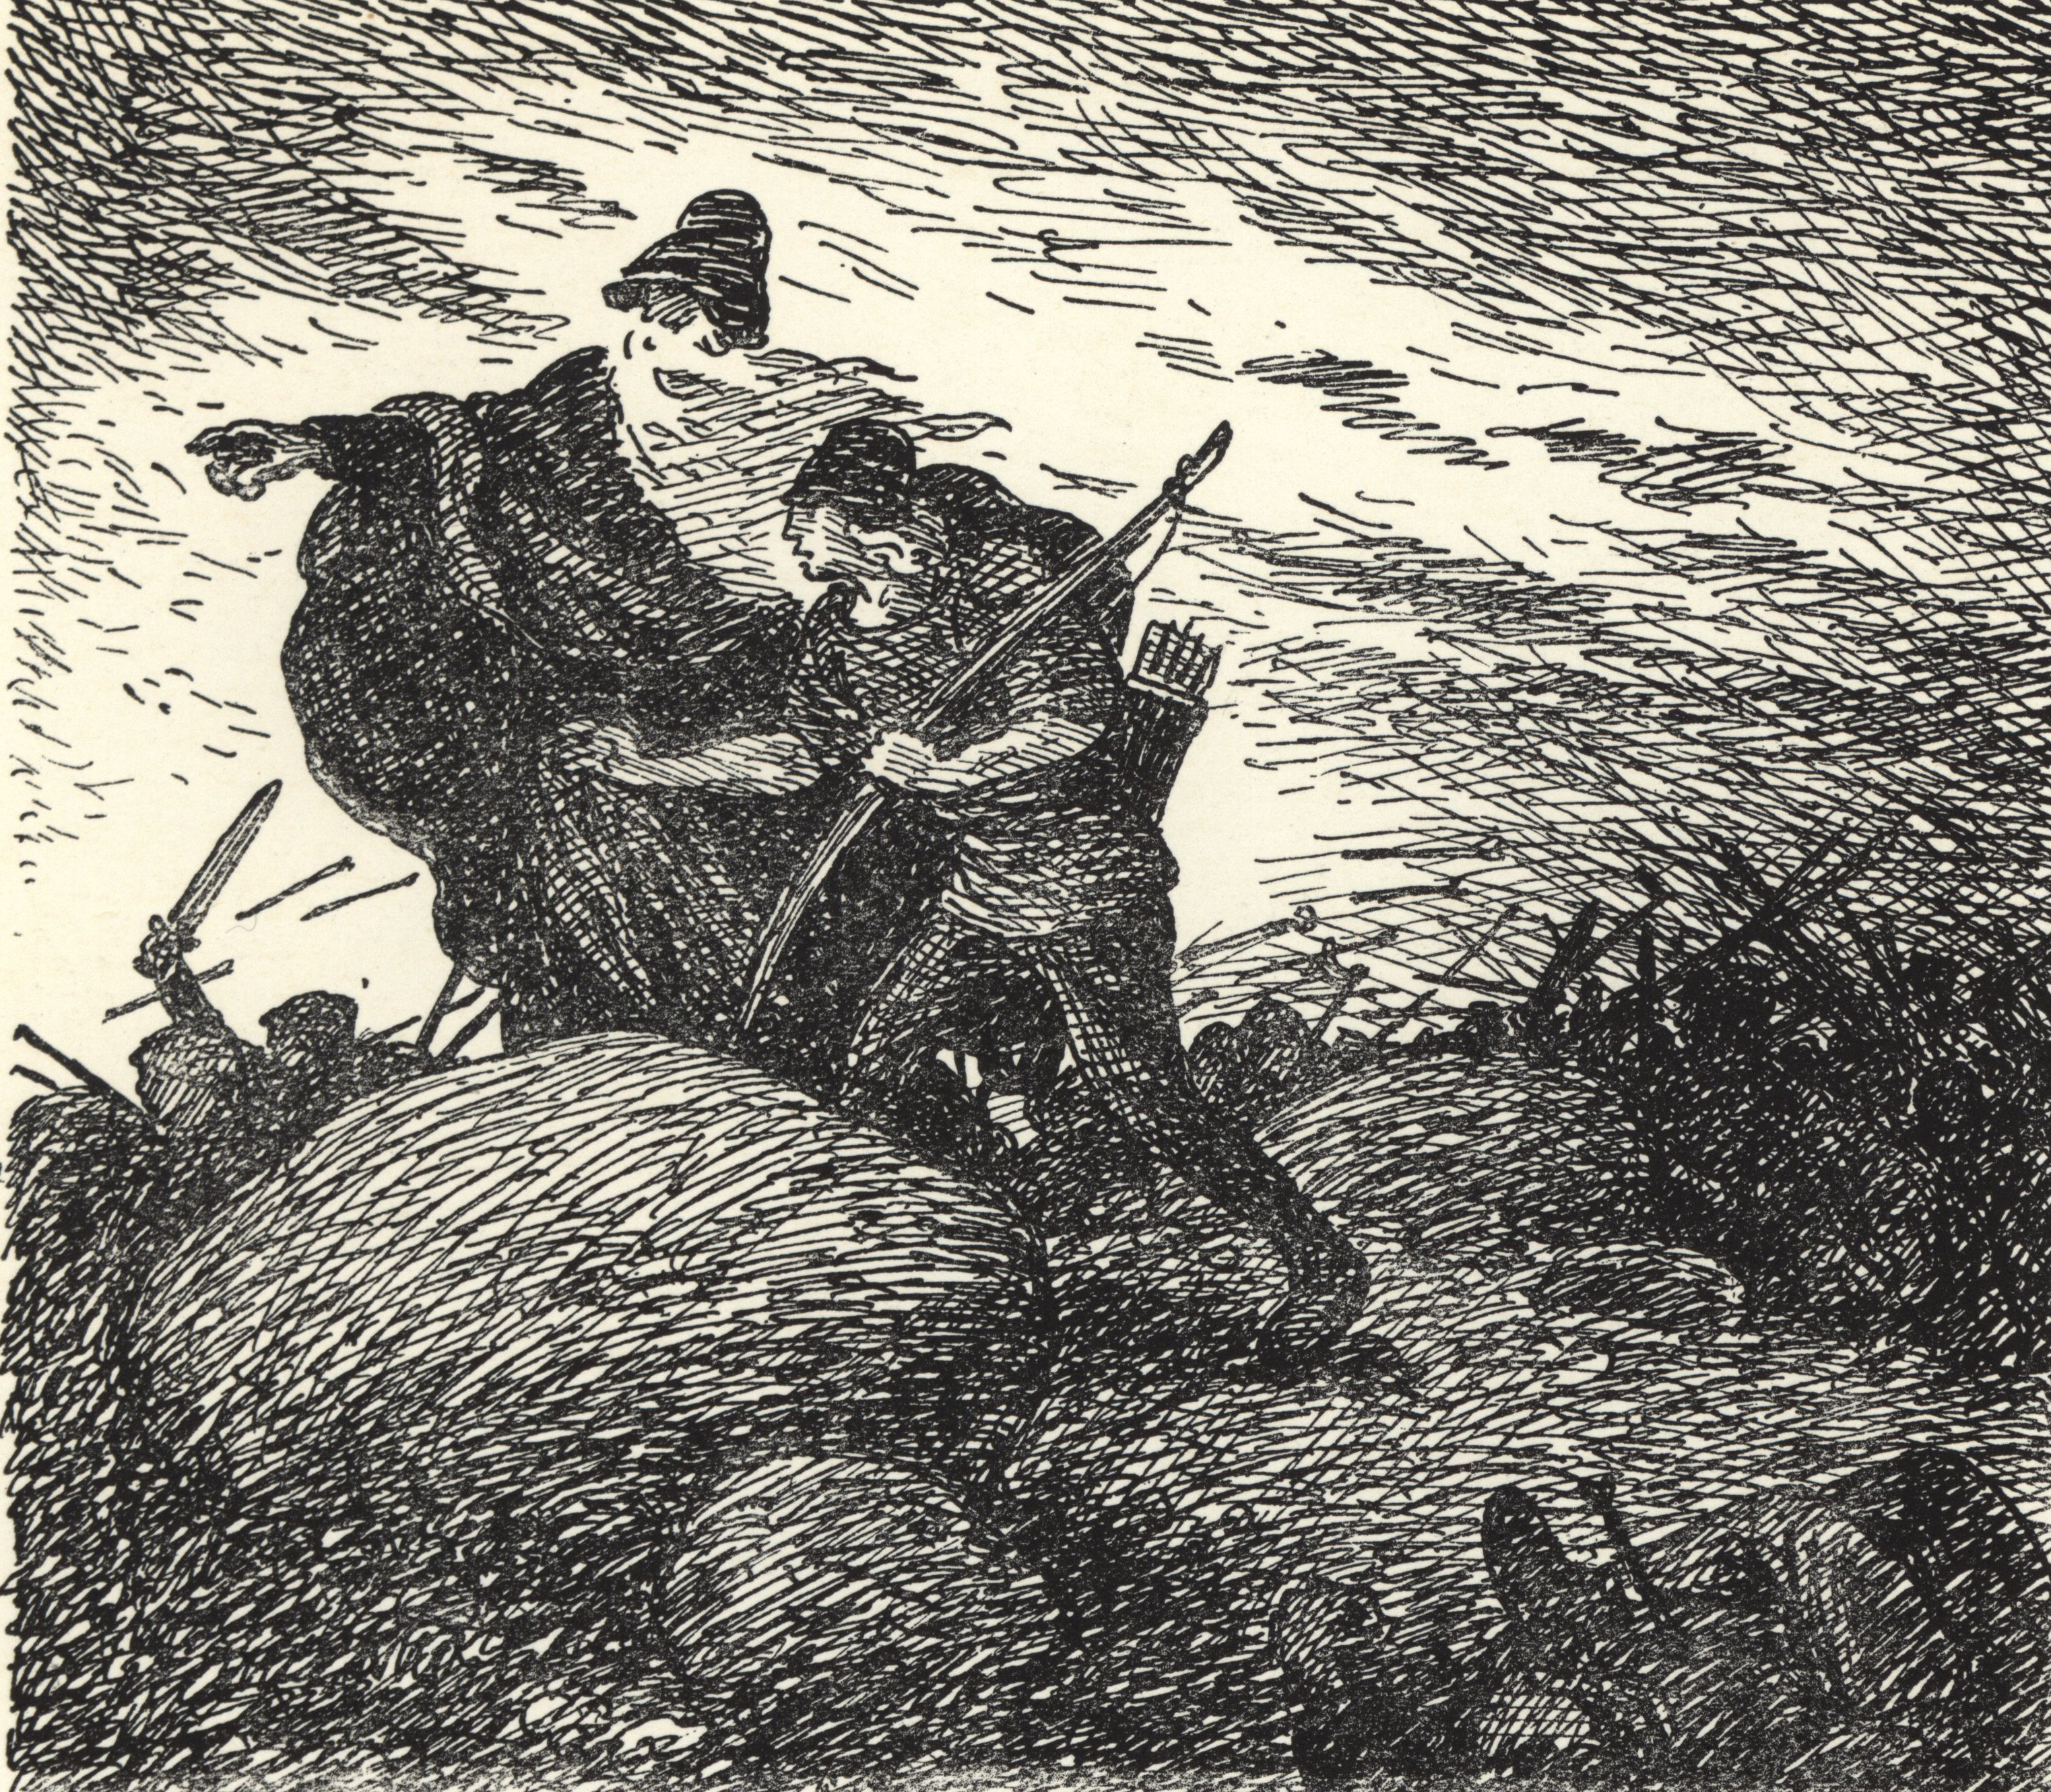 Óðinn and the Archer